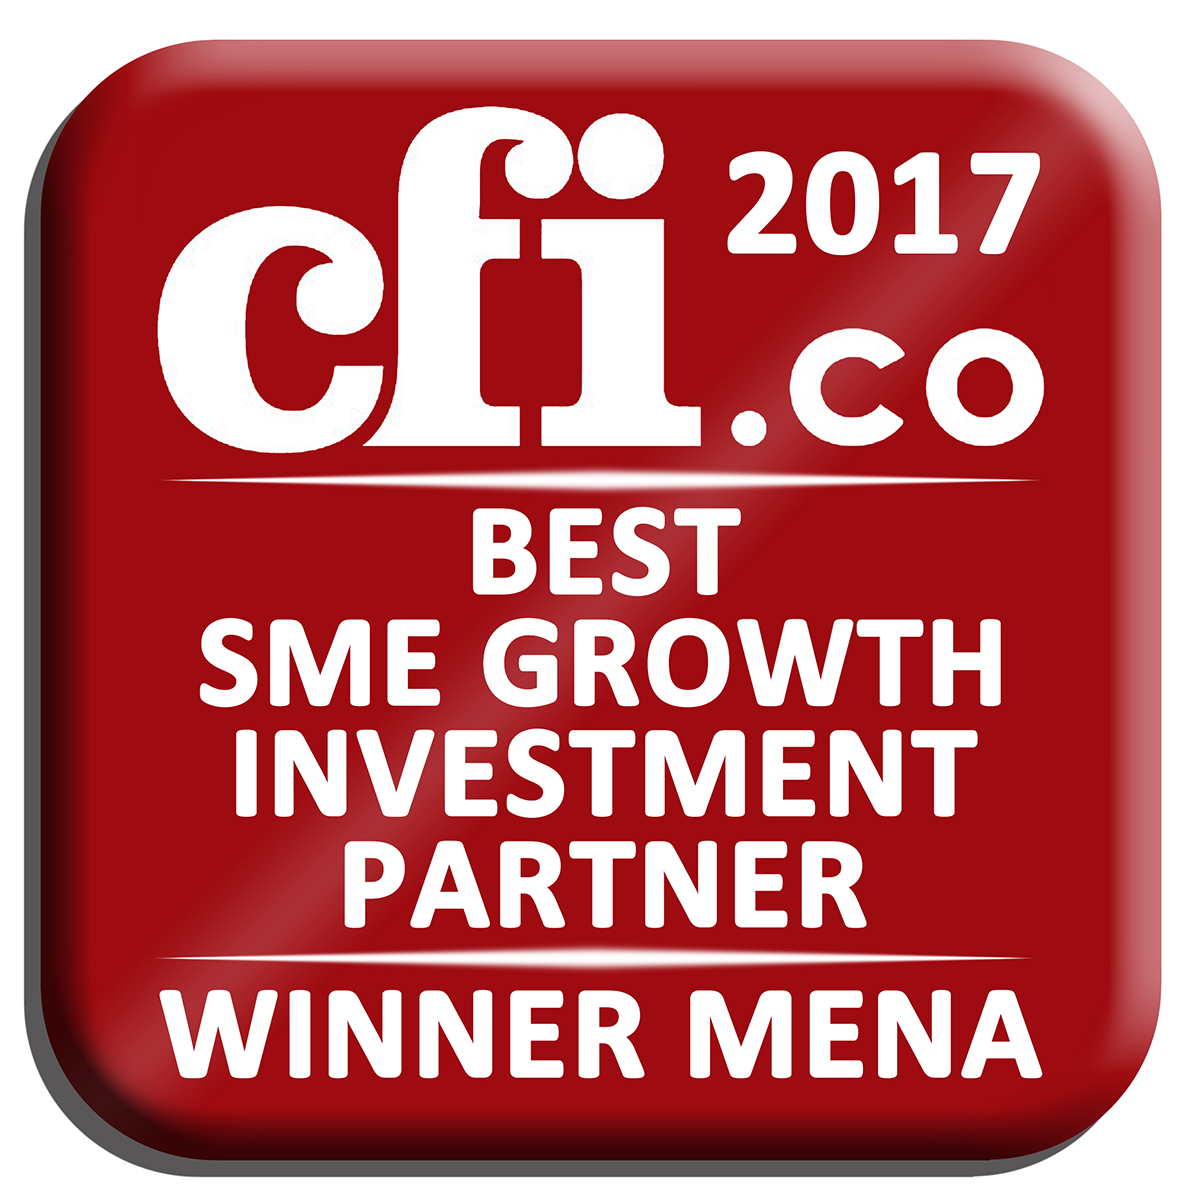 CATALYST PARTNERS WINS THE PRESTIGEOUS CFI AWARD FOR 2017 BEST SME GROWTH INVESTMENT PARTNER – MENA